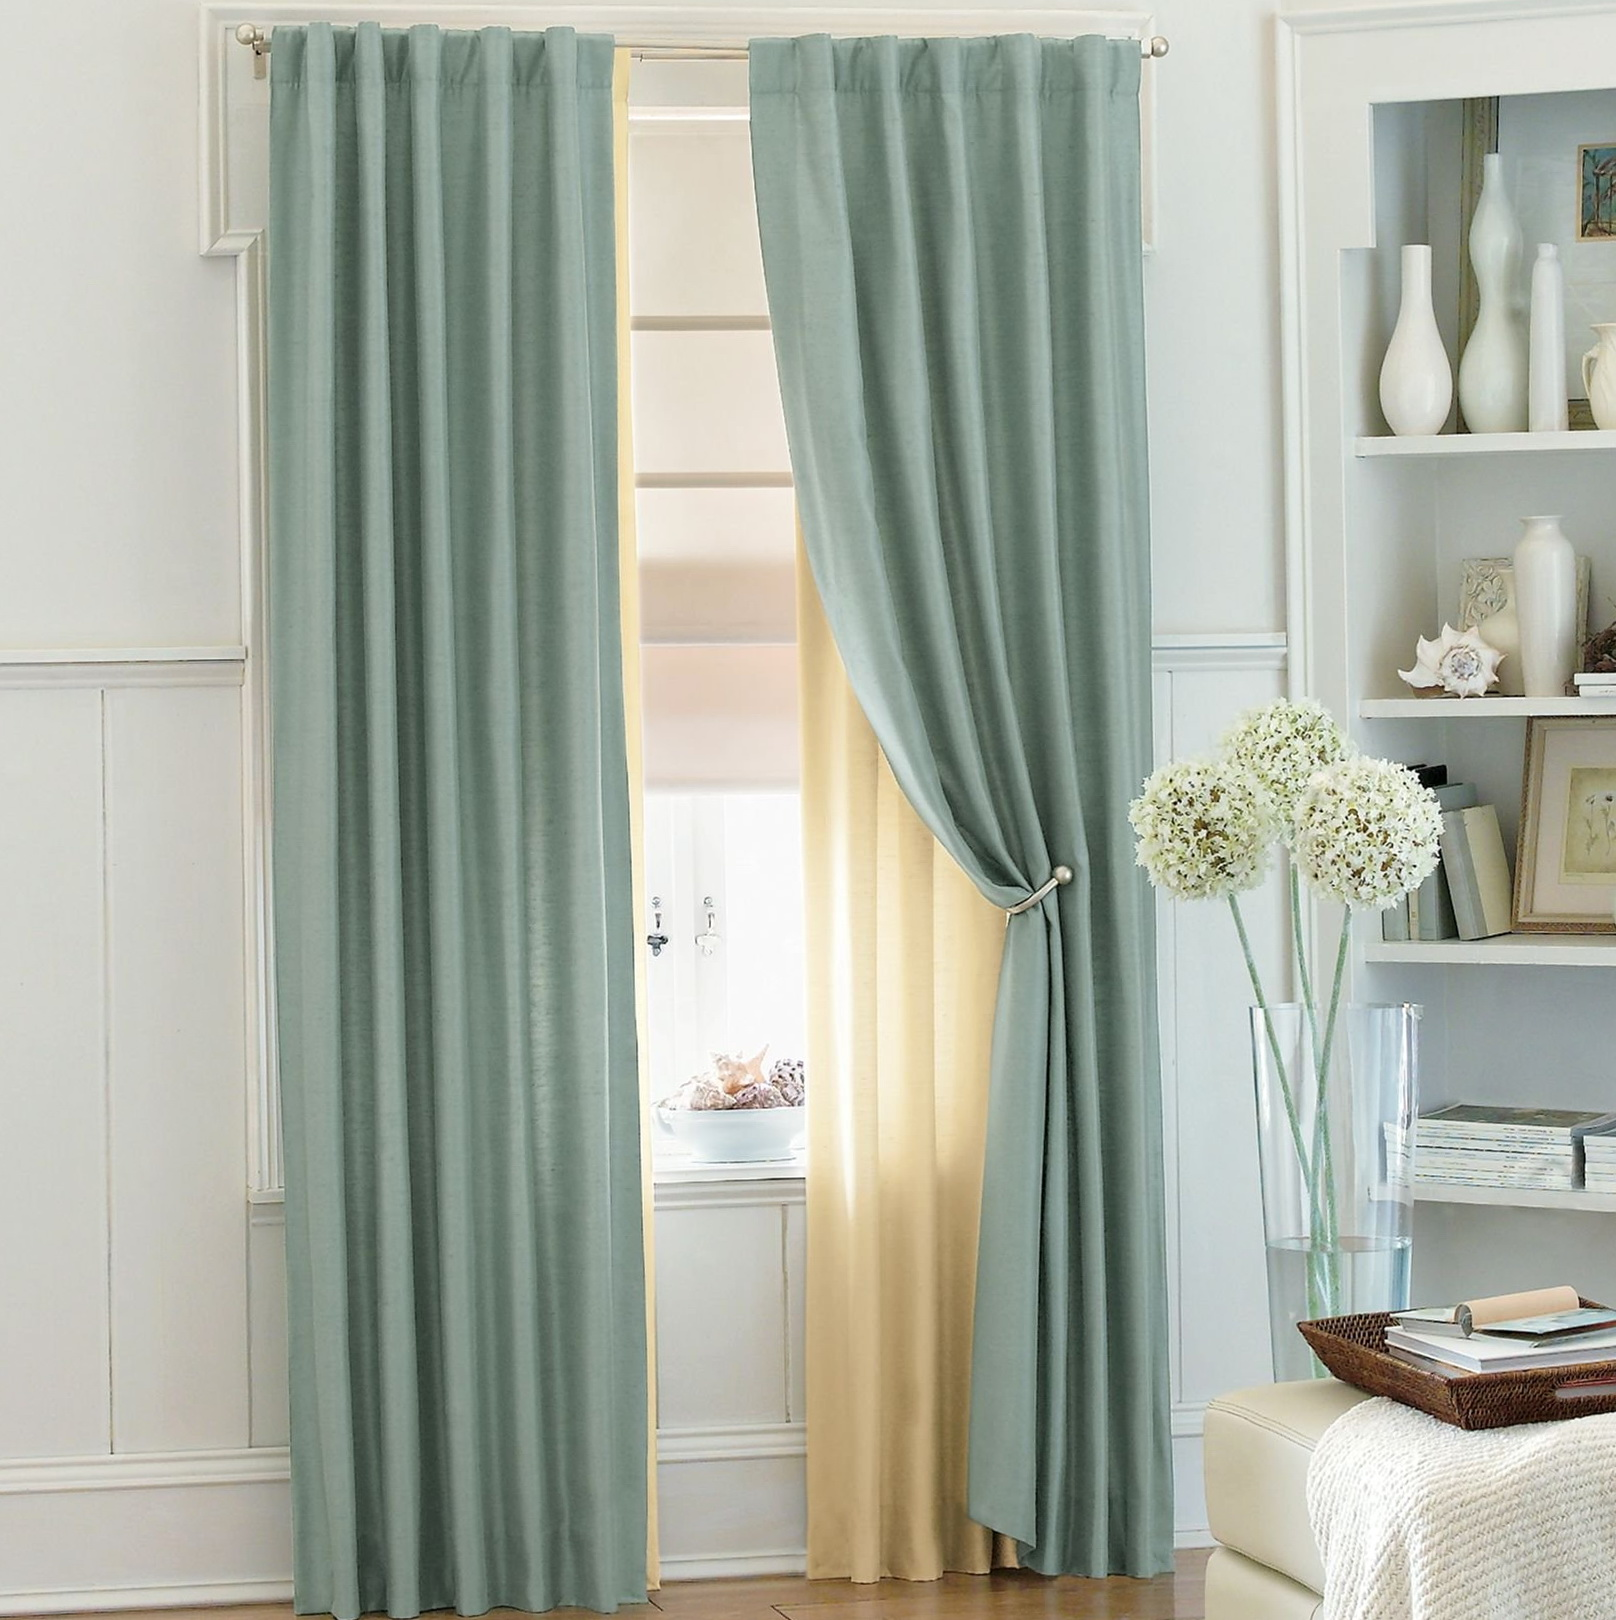 Double Shower Curtain Ideas Home Design Ideas